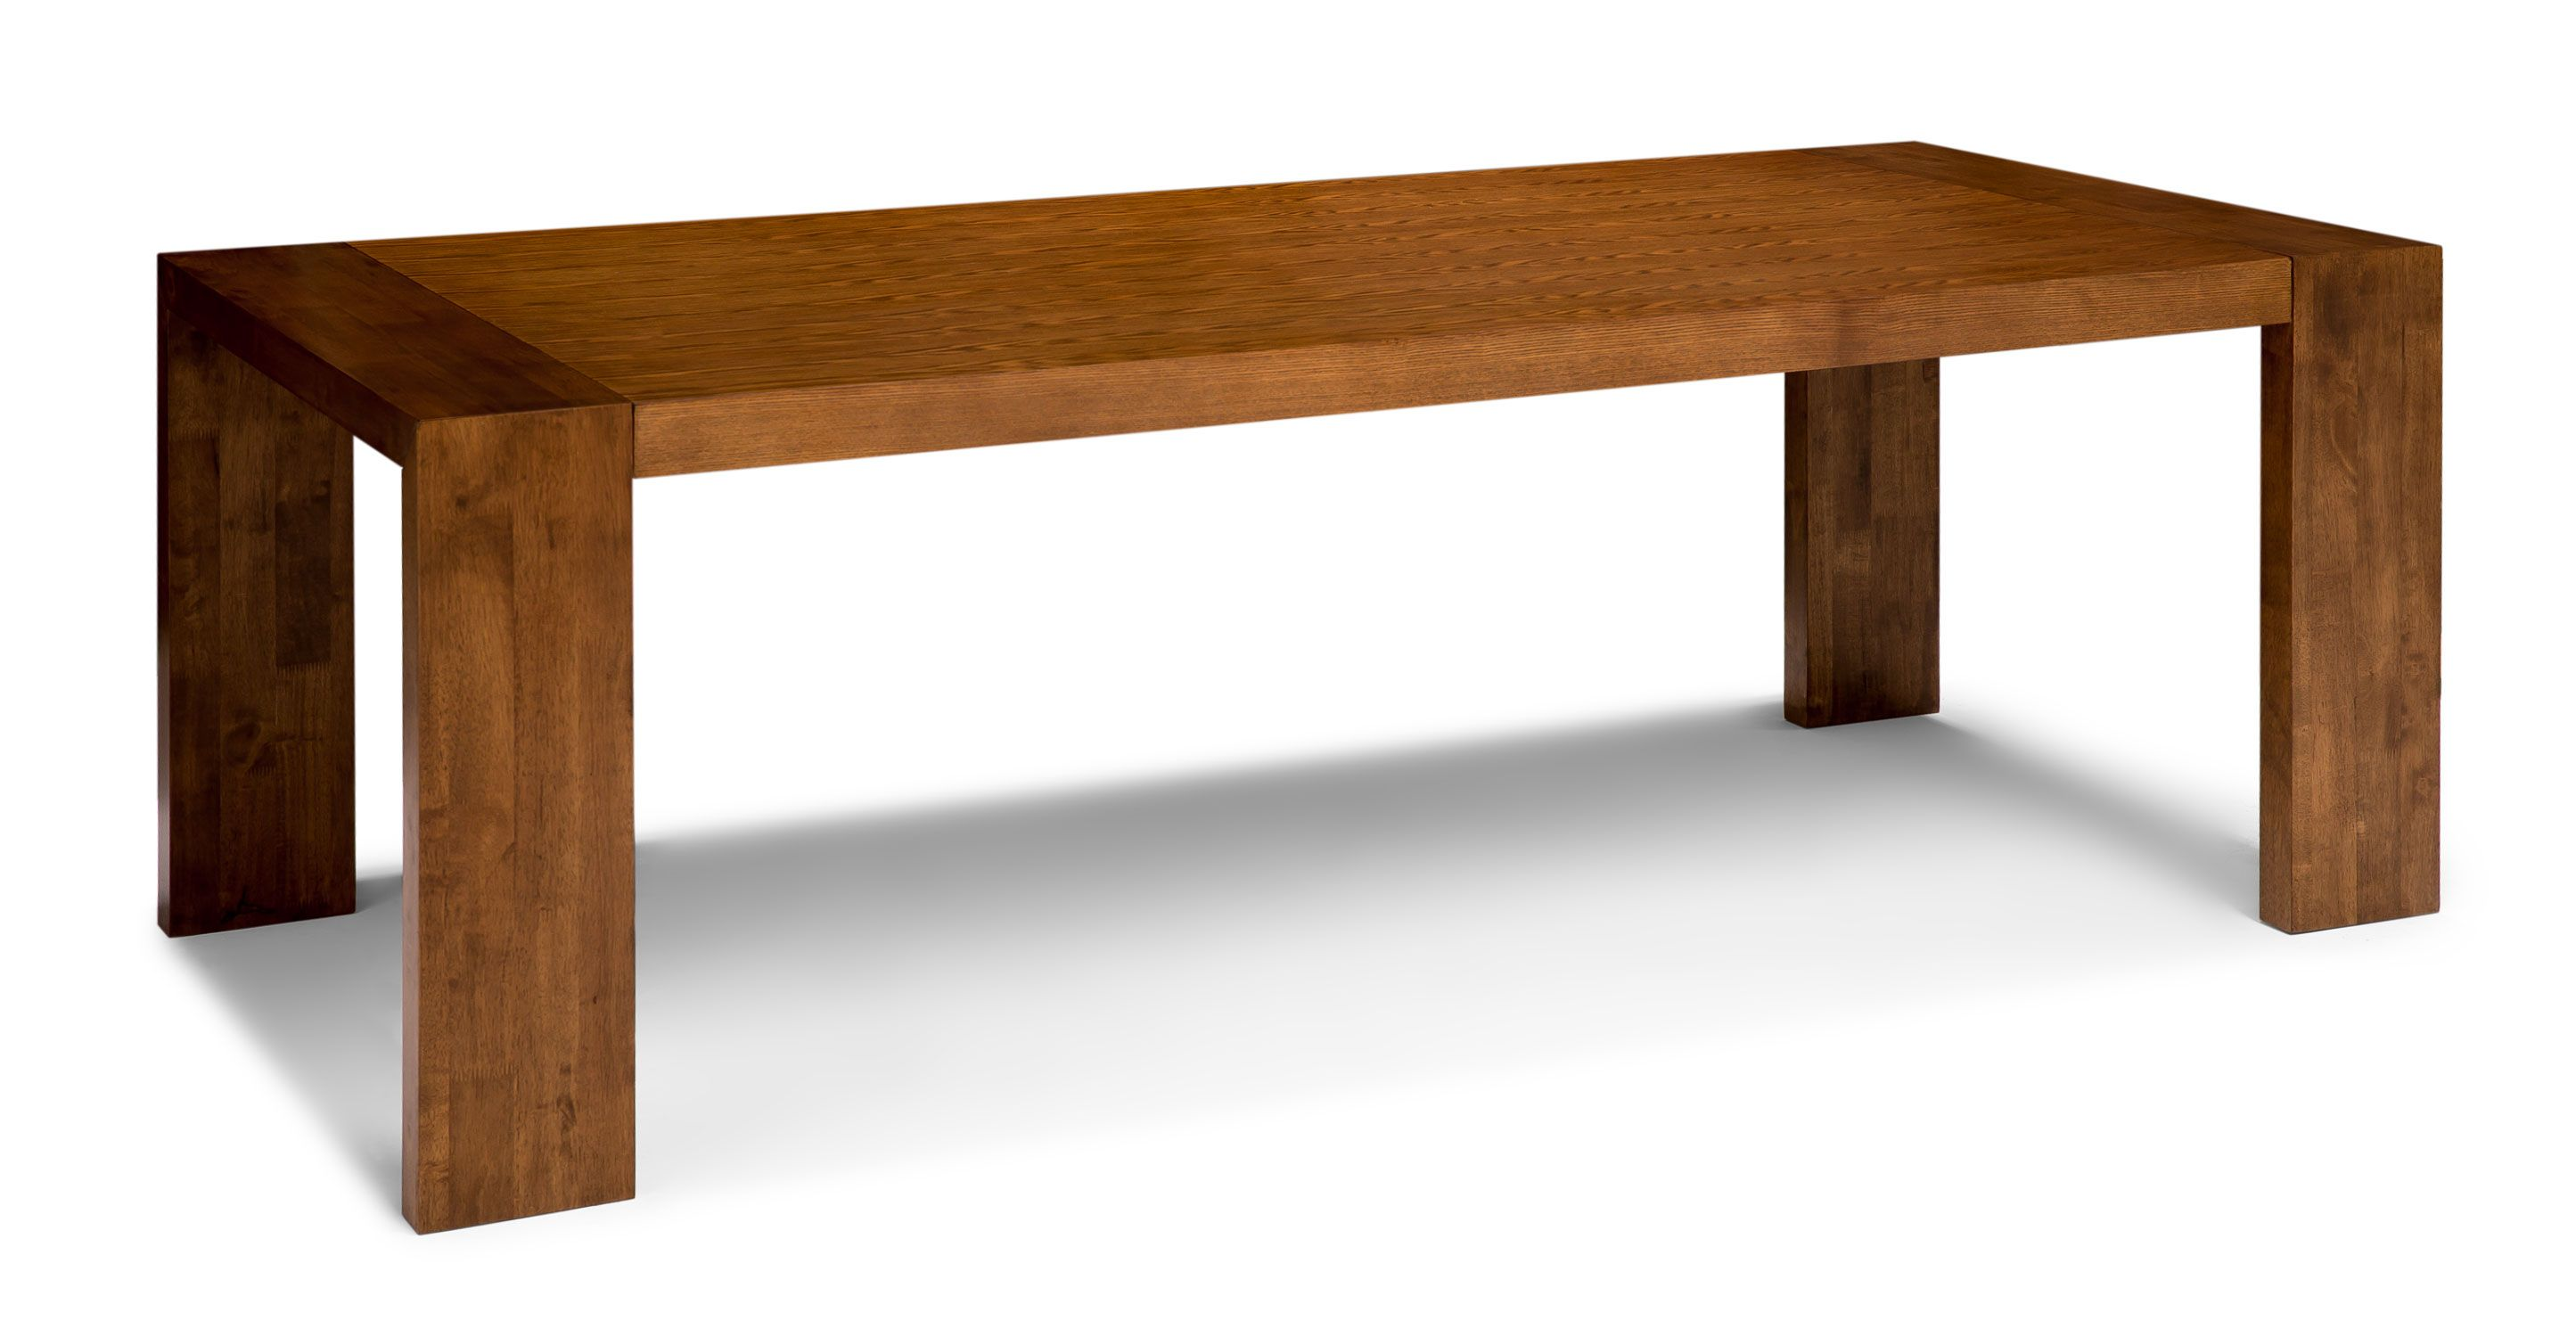 Clarkson Cocoa Wood Dining Table   Wood Tables   Bryght | Modern,  Mid Century And Scandinavian Furniture